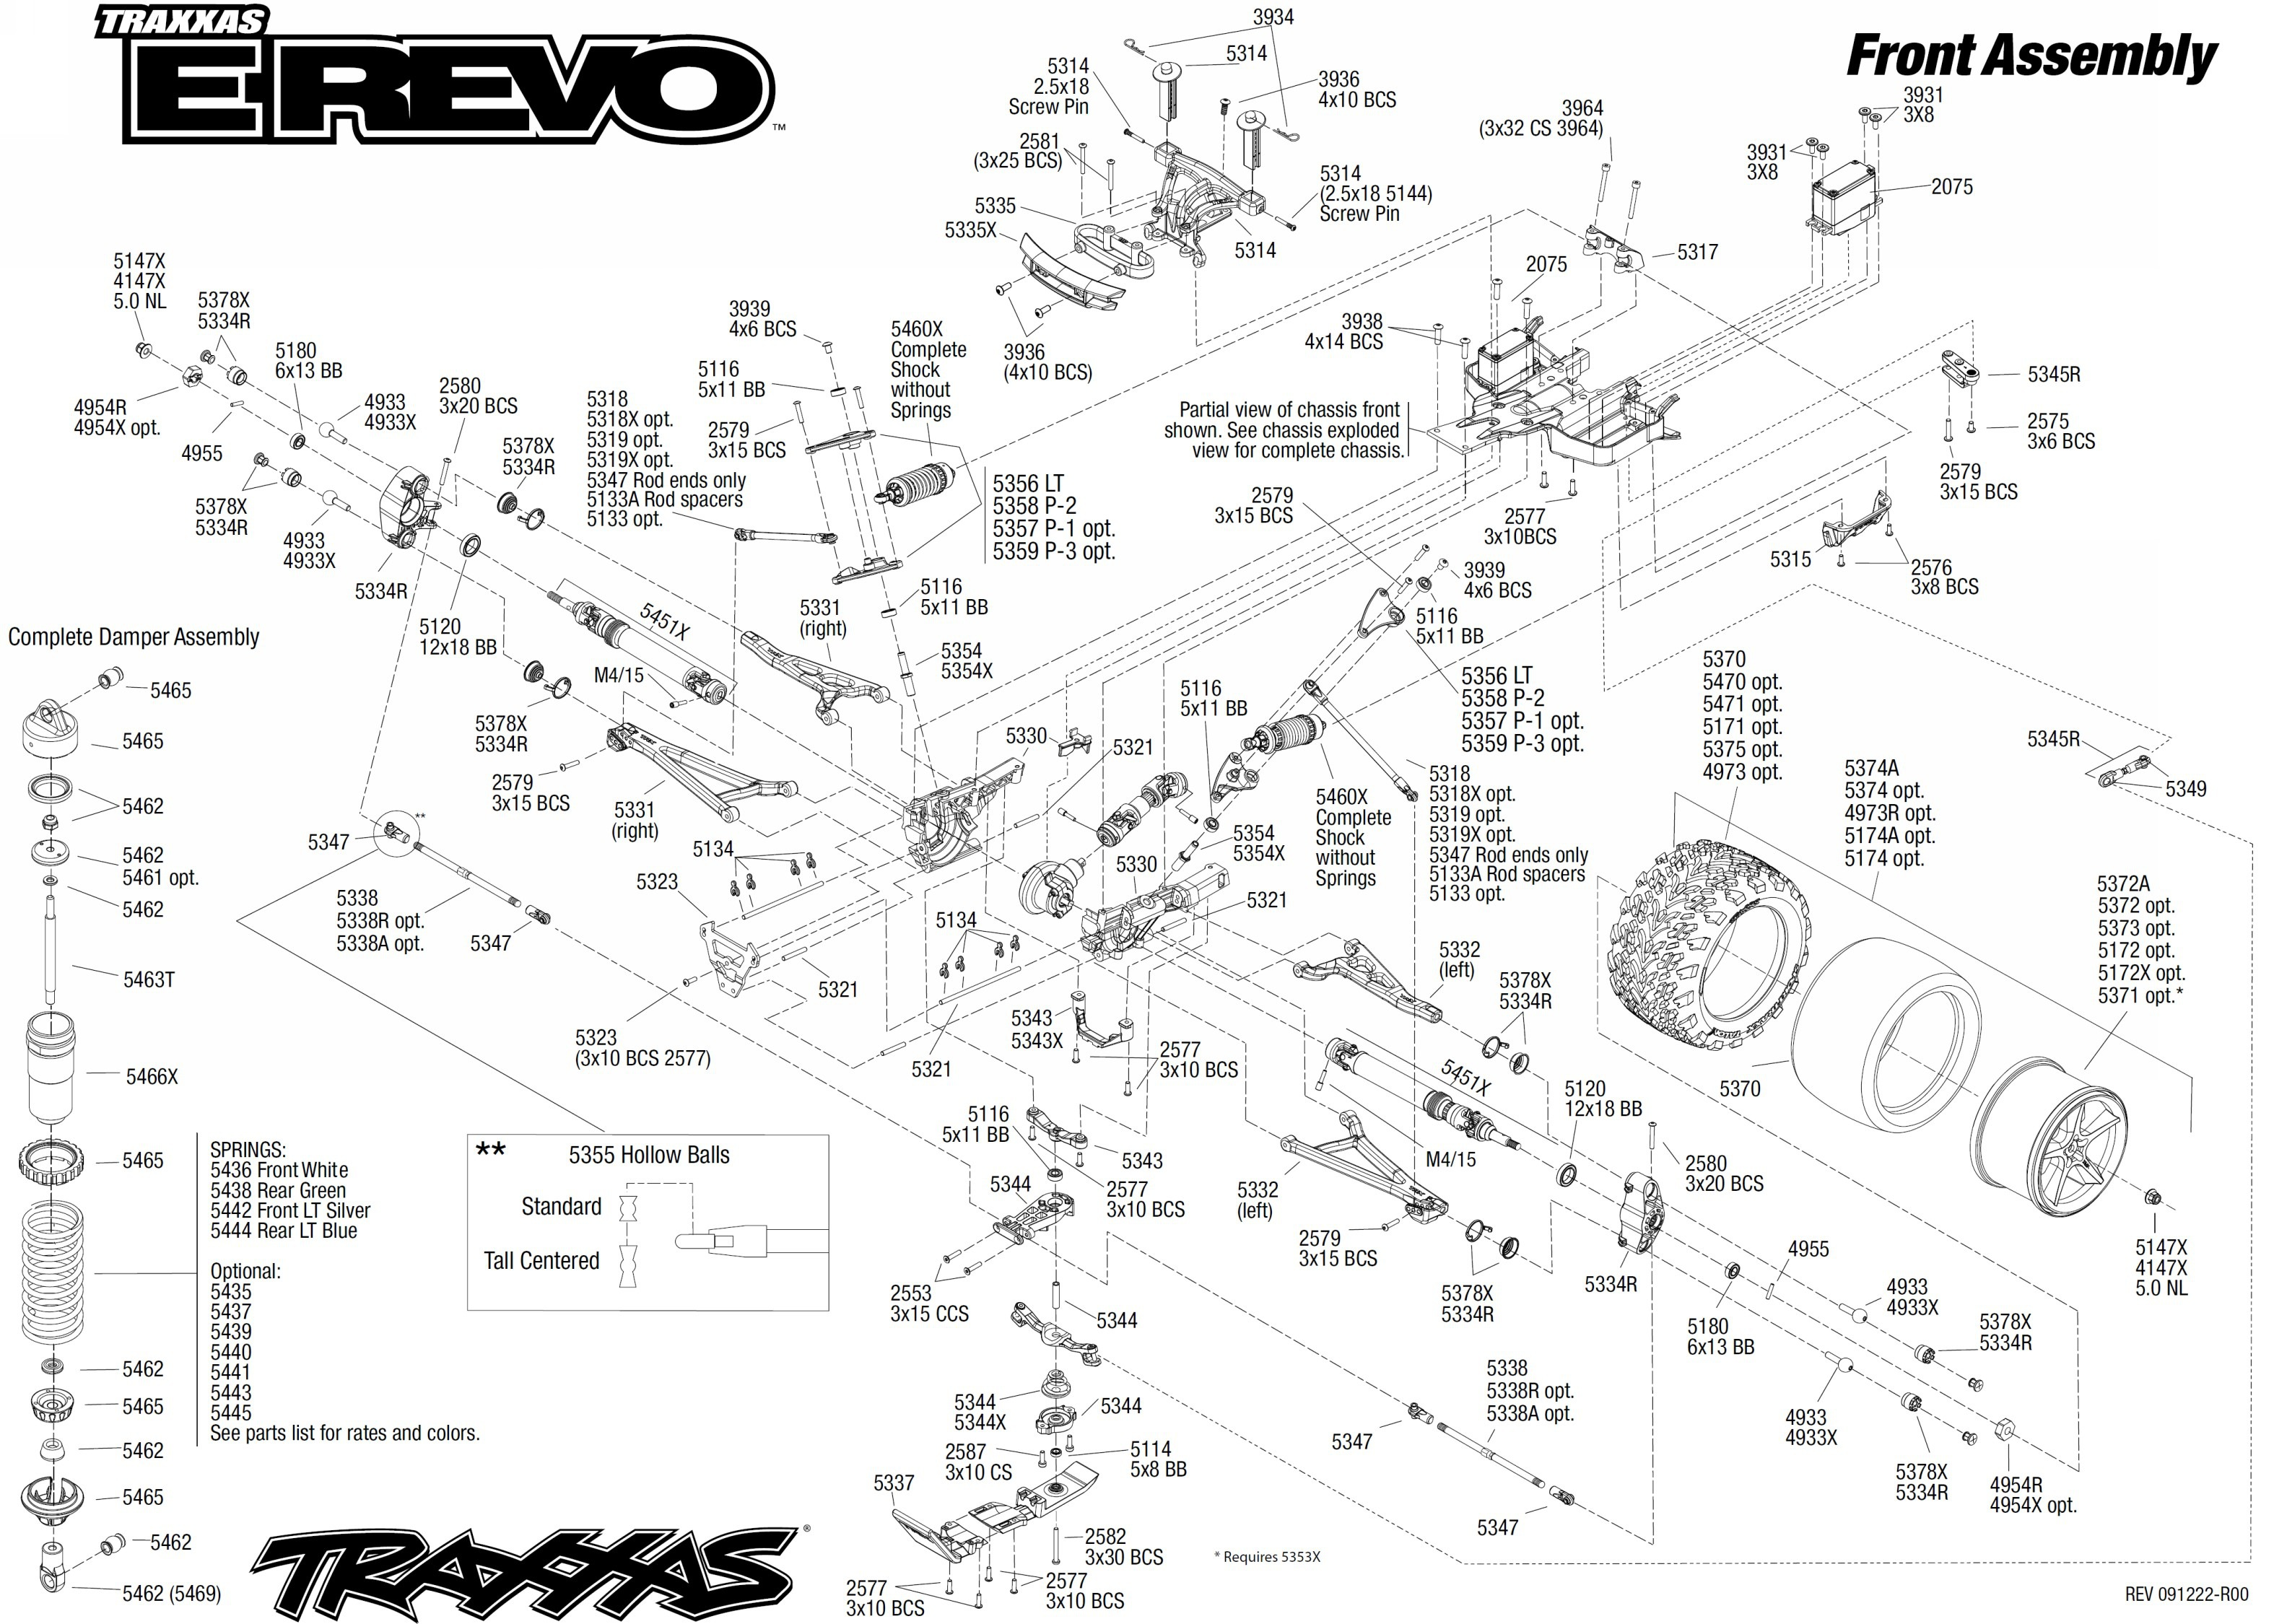 Traxxas E Maxx Front Assembly Diagrams Wiring Diagram And Ebooks Stampede Vxl Parts Monster Jam Replicas 3602 Revo Database Rh 18 2 Infection Nl De X 3908